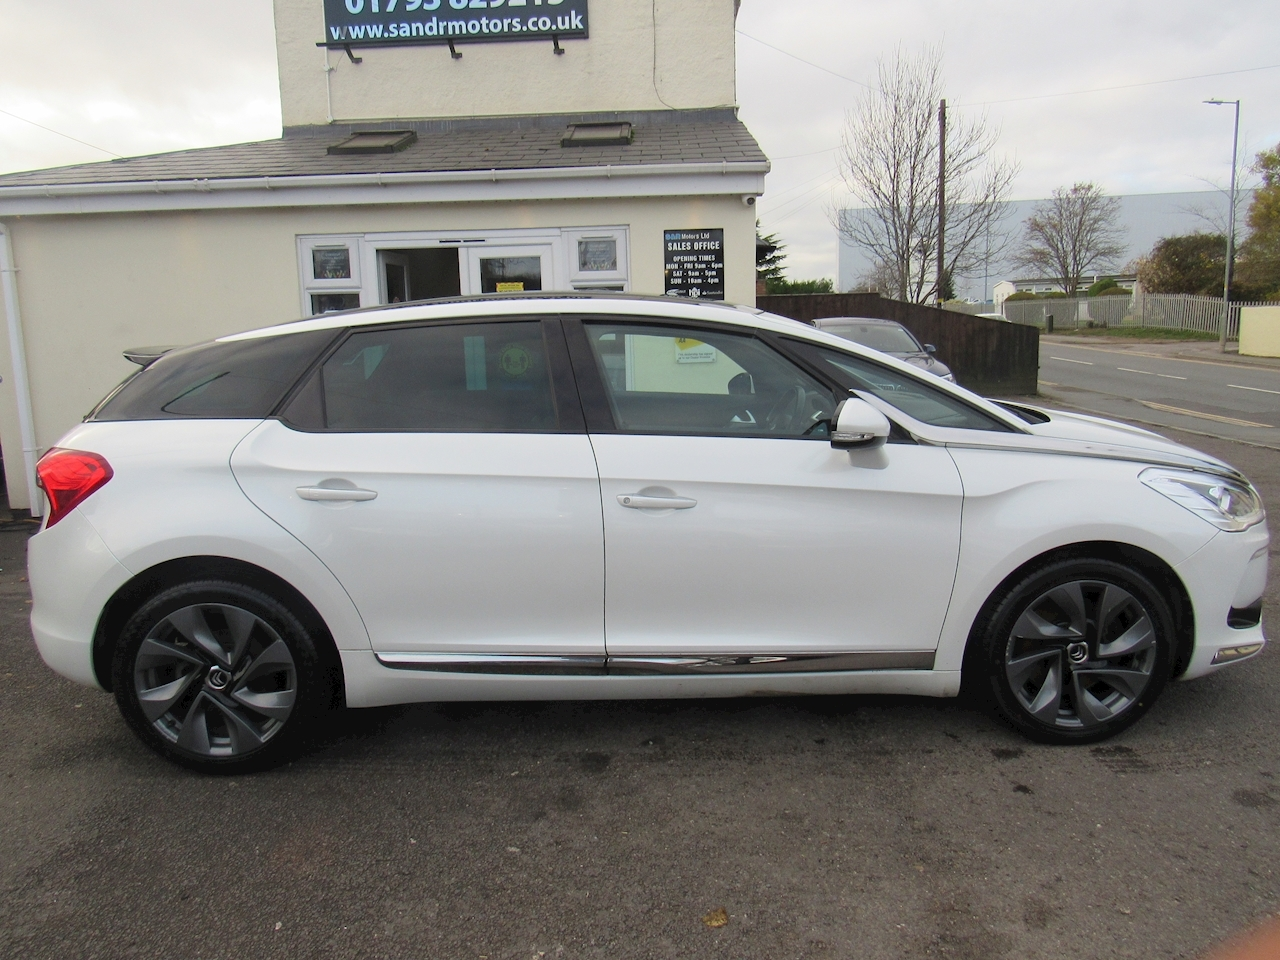 Citroen Ds5 Hdi Dstyle Hatchback 2.0 Manual Diesel